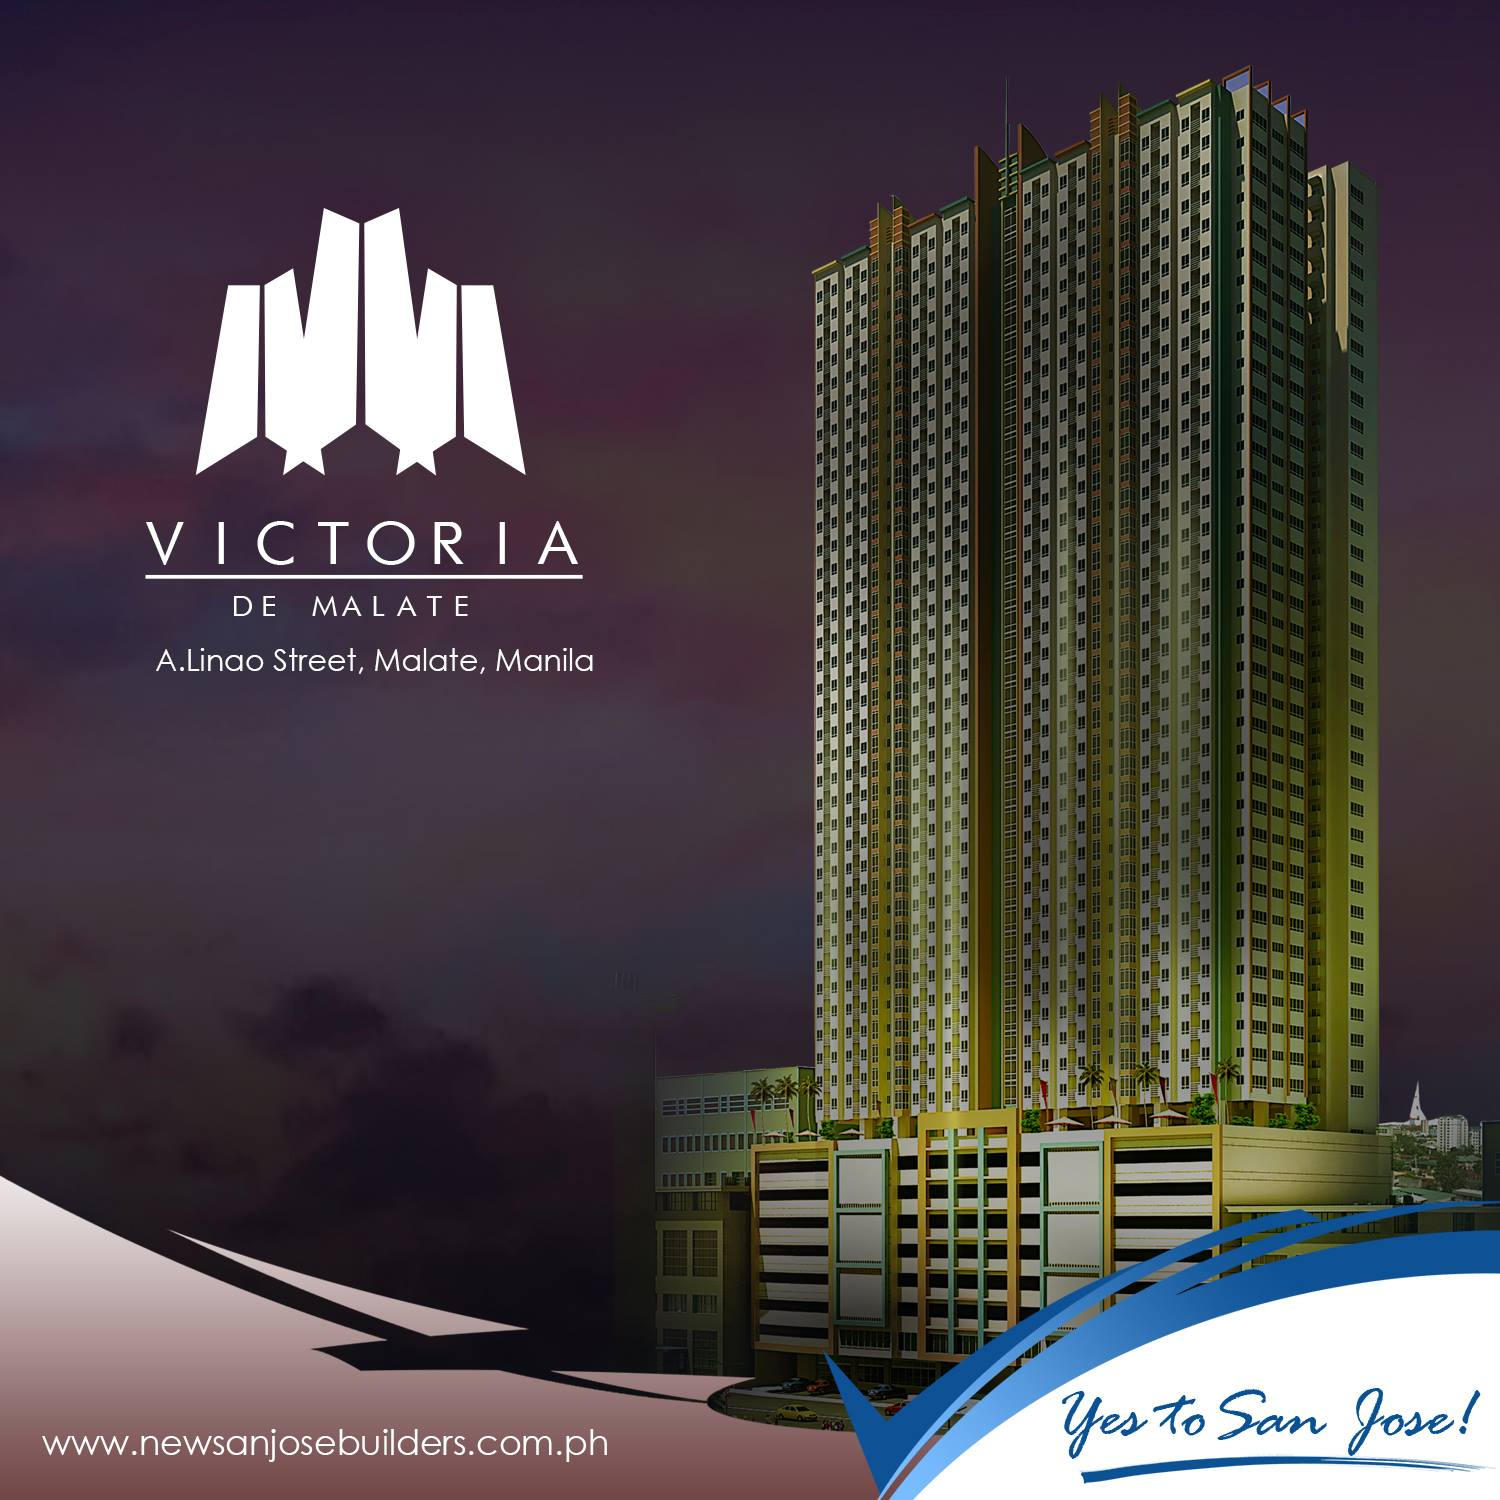 Victoria de Morato located at Sct.Borromeo, Quezon City.